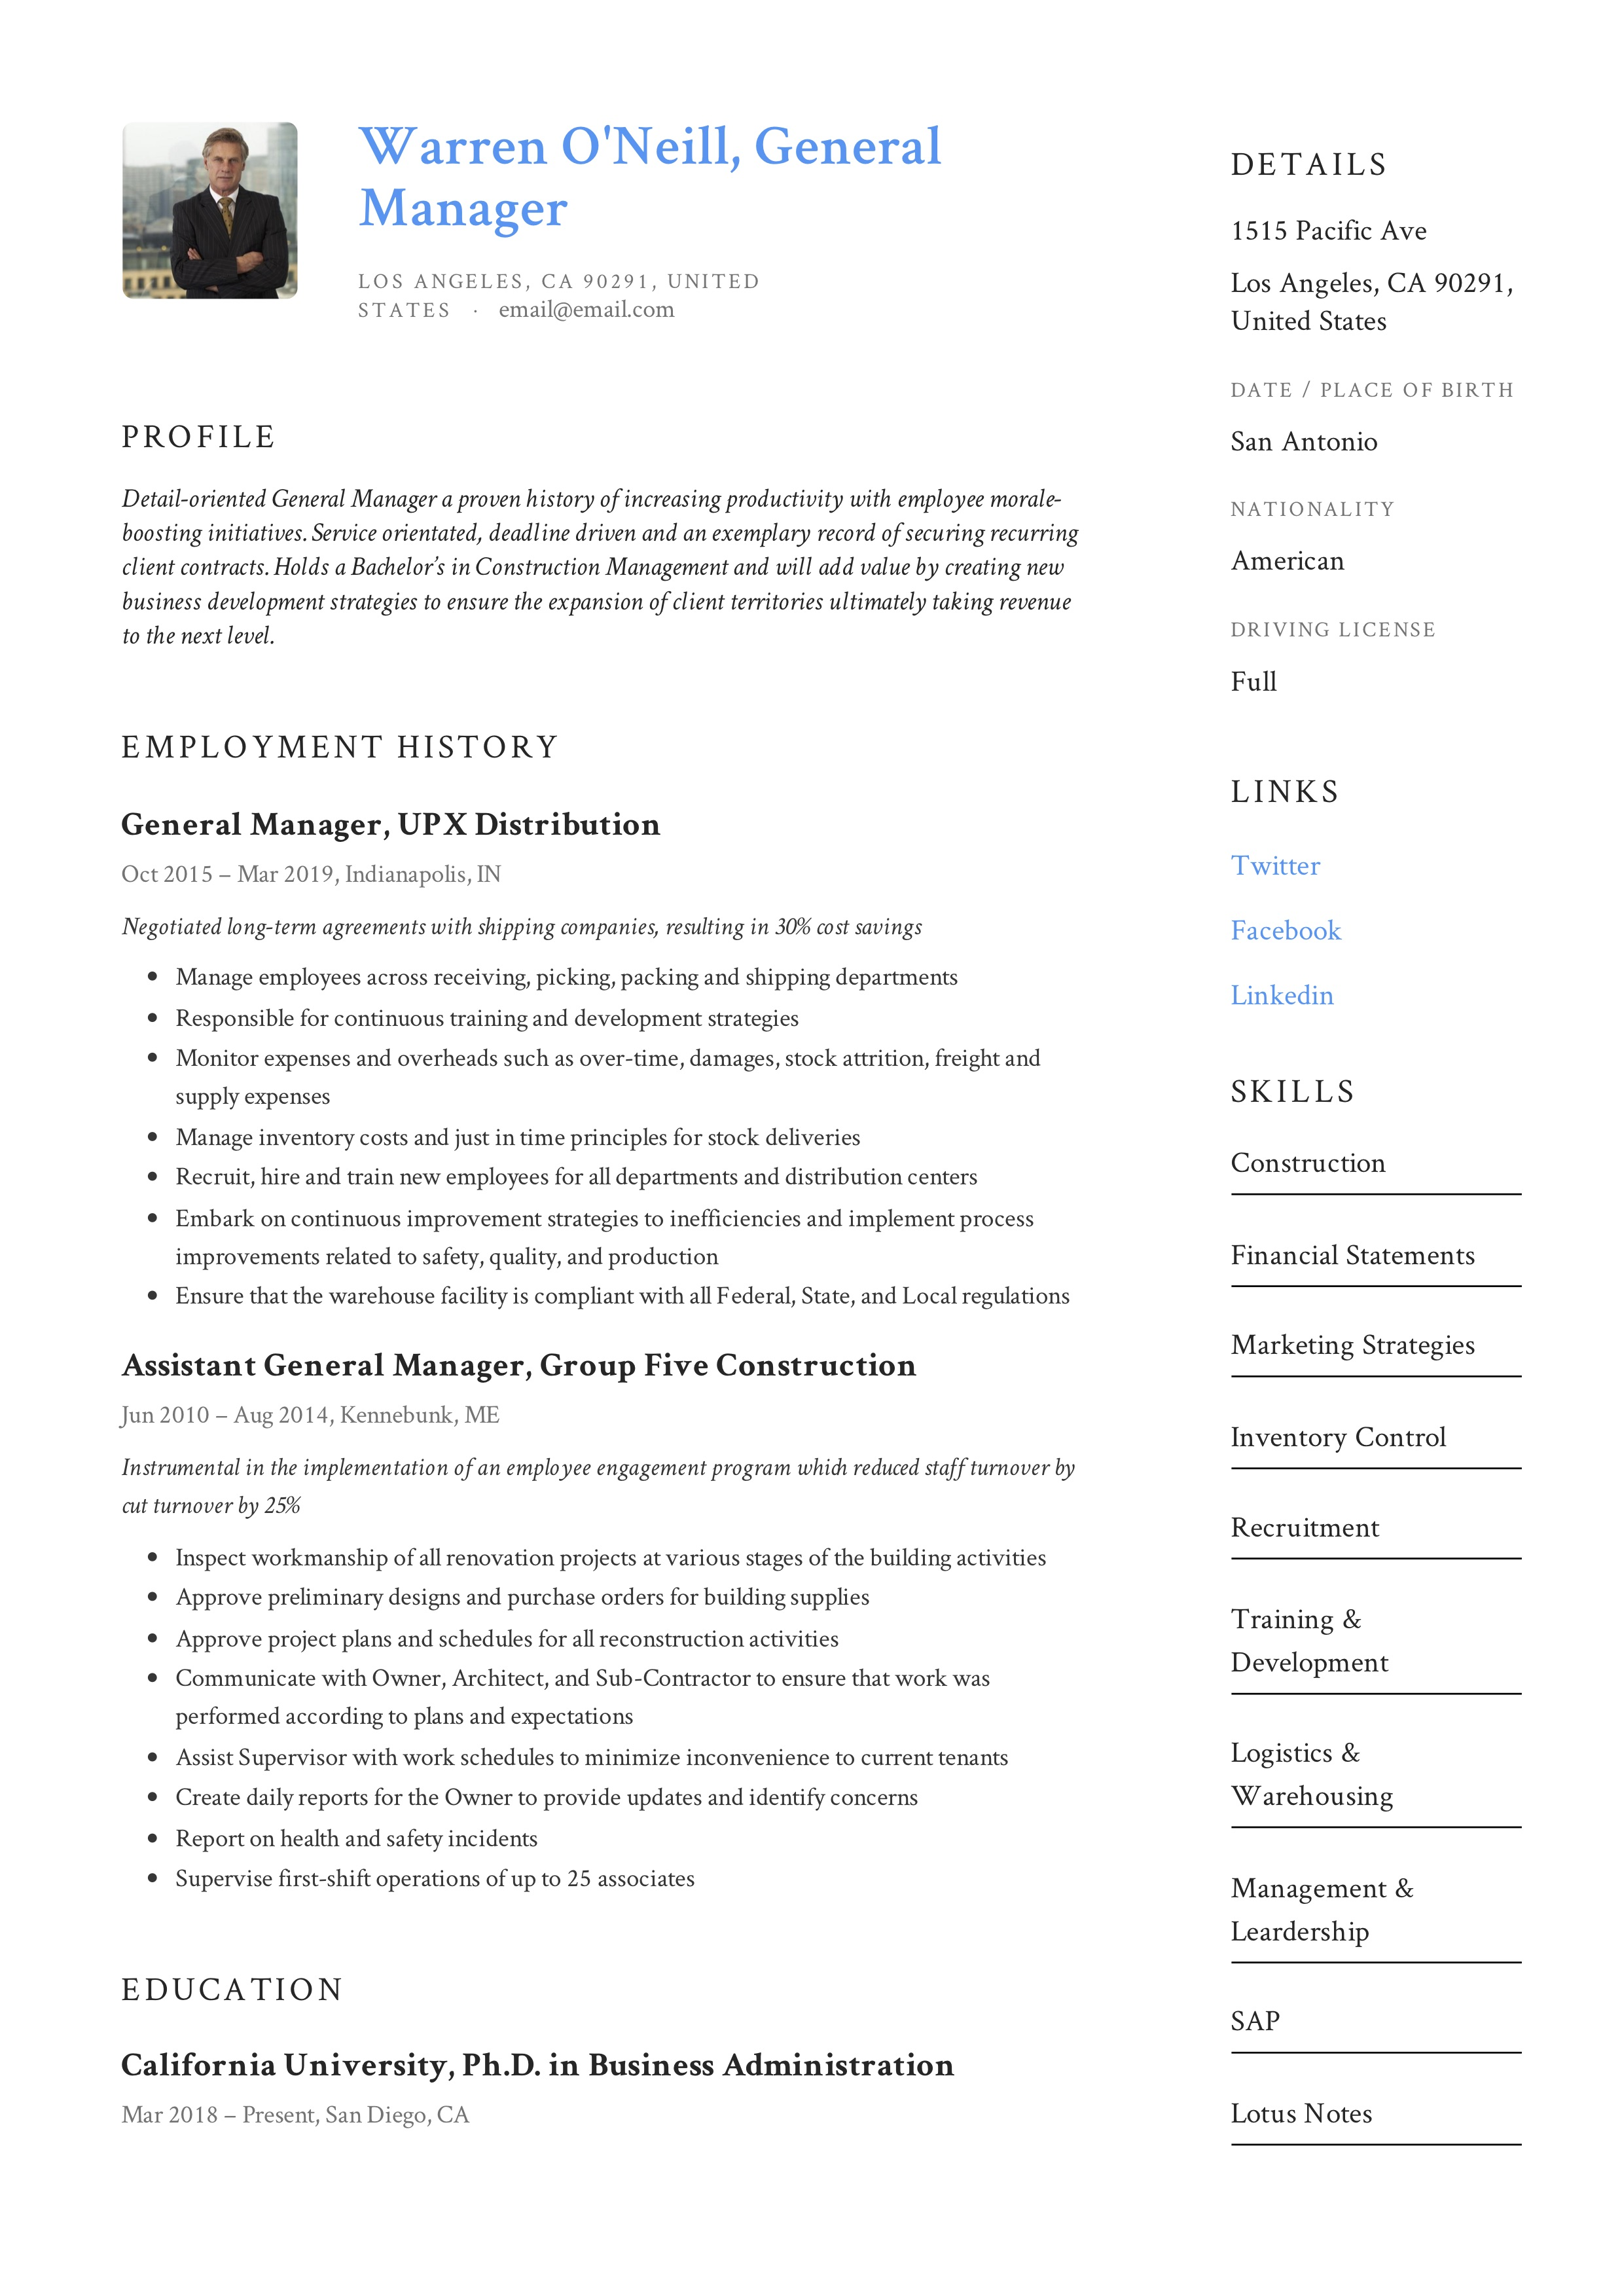 Warren_O_Neill_-_Resume_-_General_Manager (5)